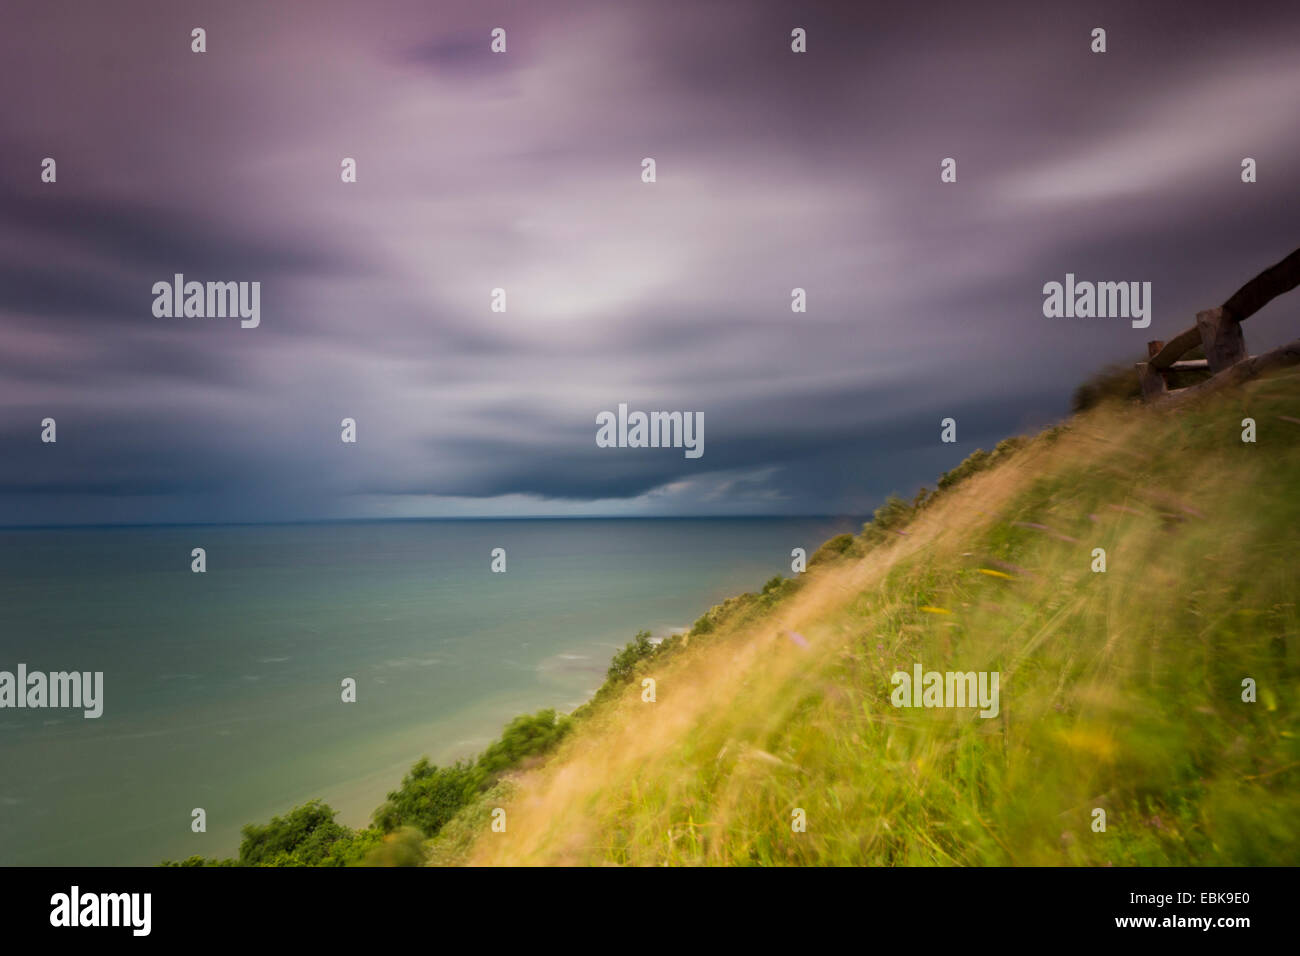 moving longtime exposure over the Blatic Sea, longtime exposure, Germany, Mecklenburg-Western Pomerania, Hiddensee, - Stock Image